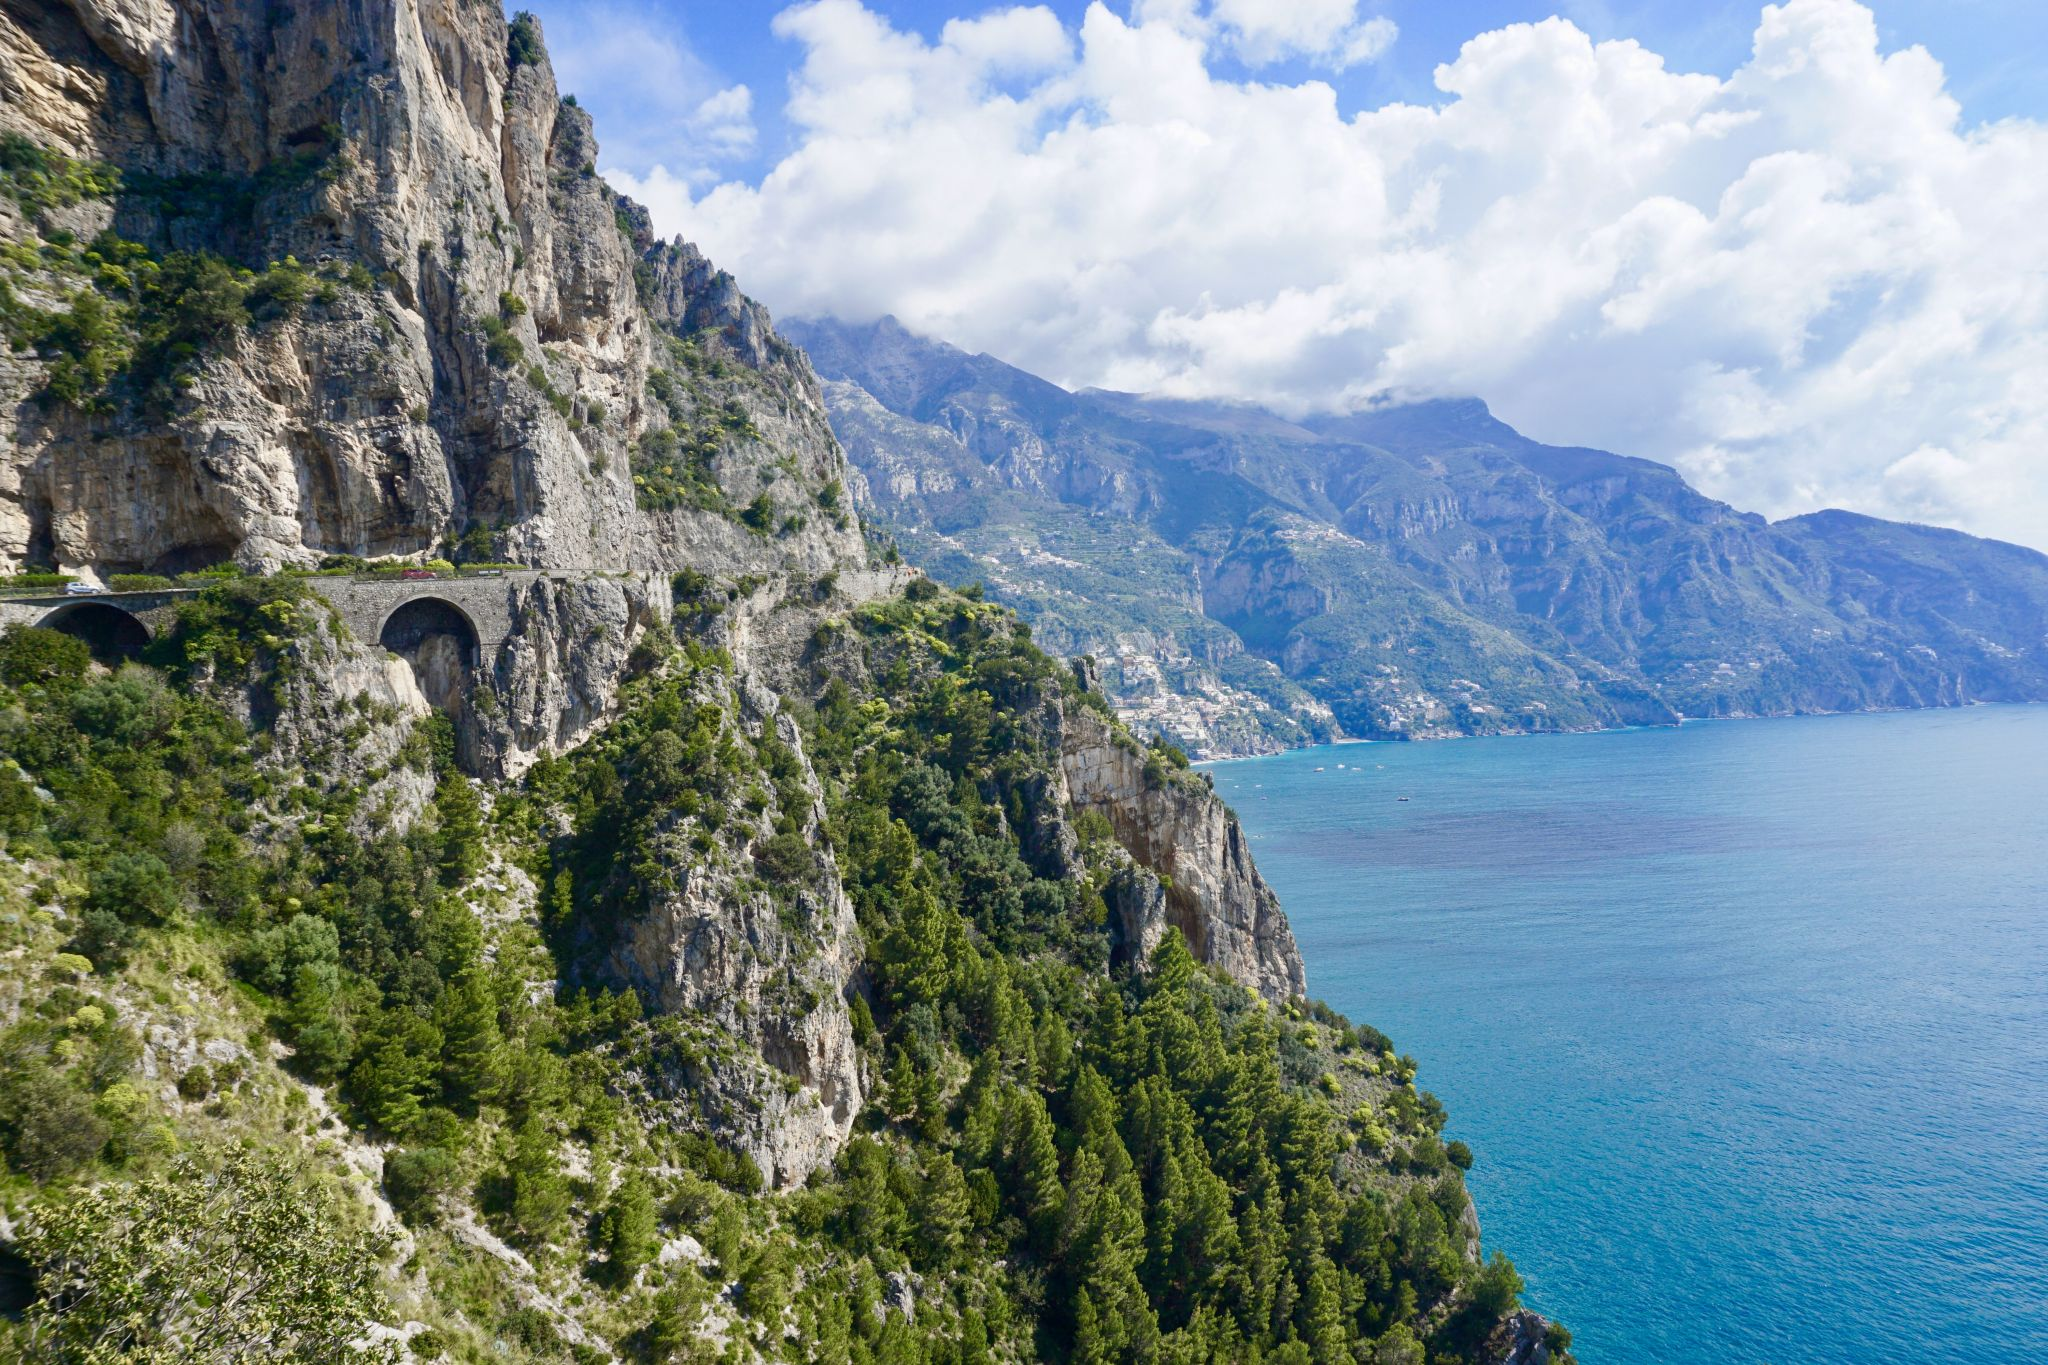 The Amalfi Drive is a thrilling and awe-inspiring road to drive